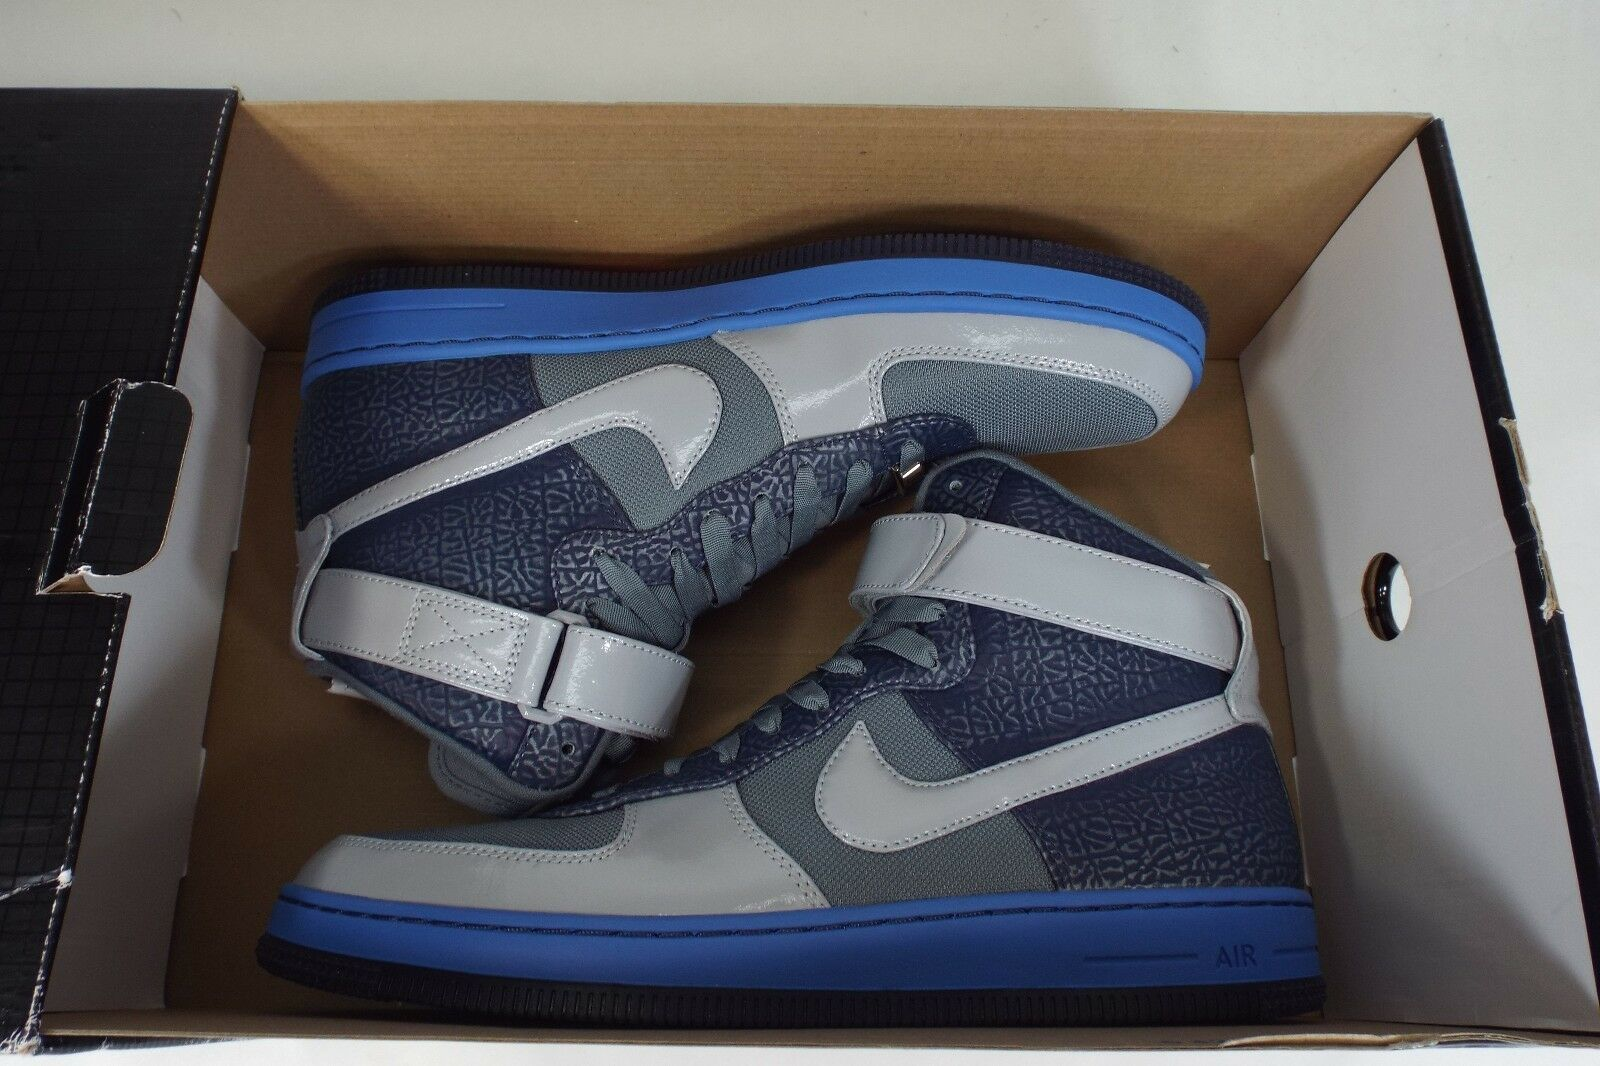 New homme 9.5 NIKE AF1 Downtown HI Basketball  Gris  Navy Basketball HI chaussures 145 574887-001 c0b5b5